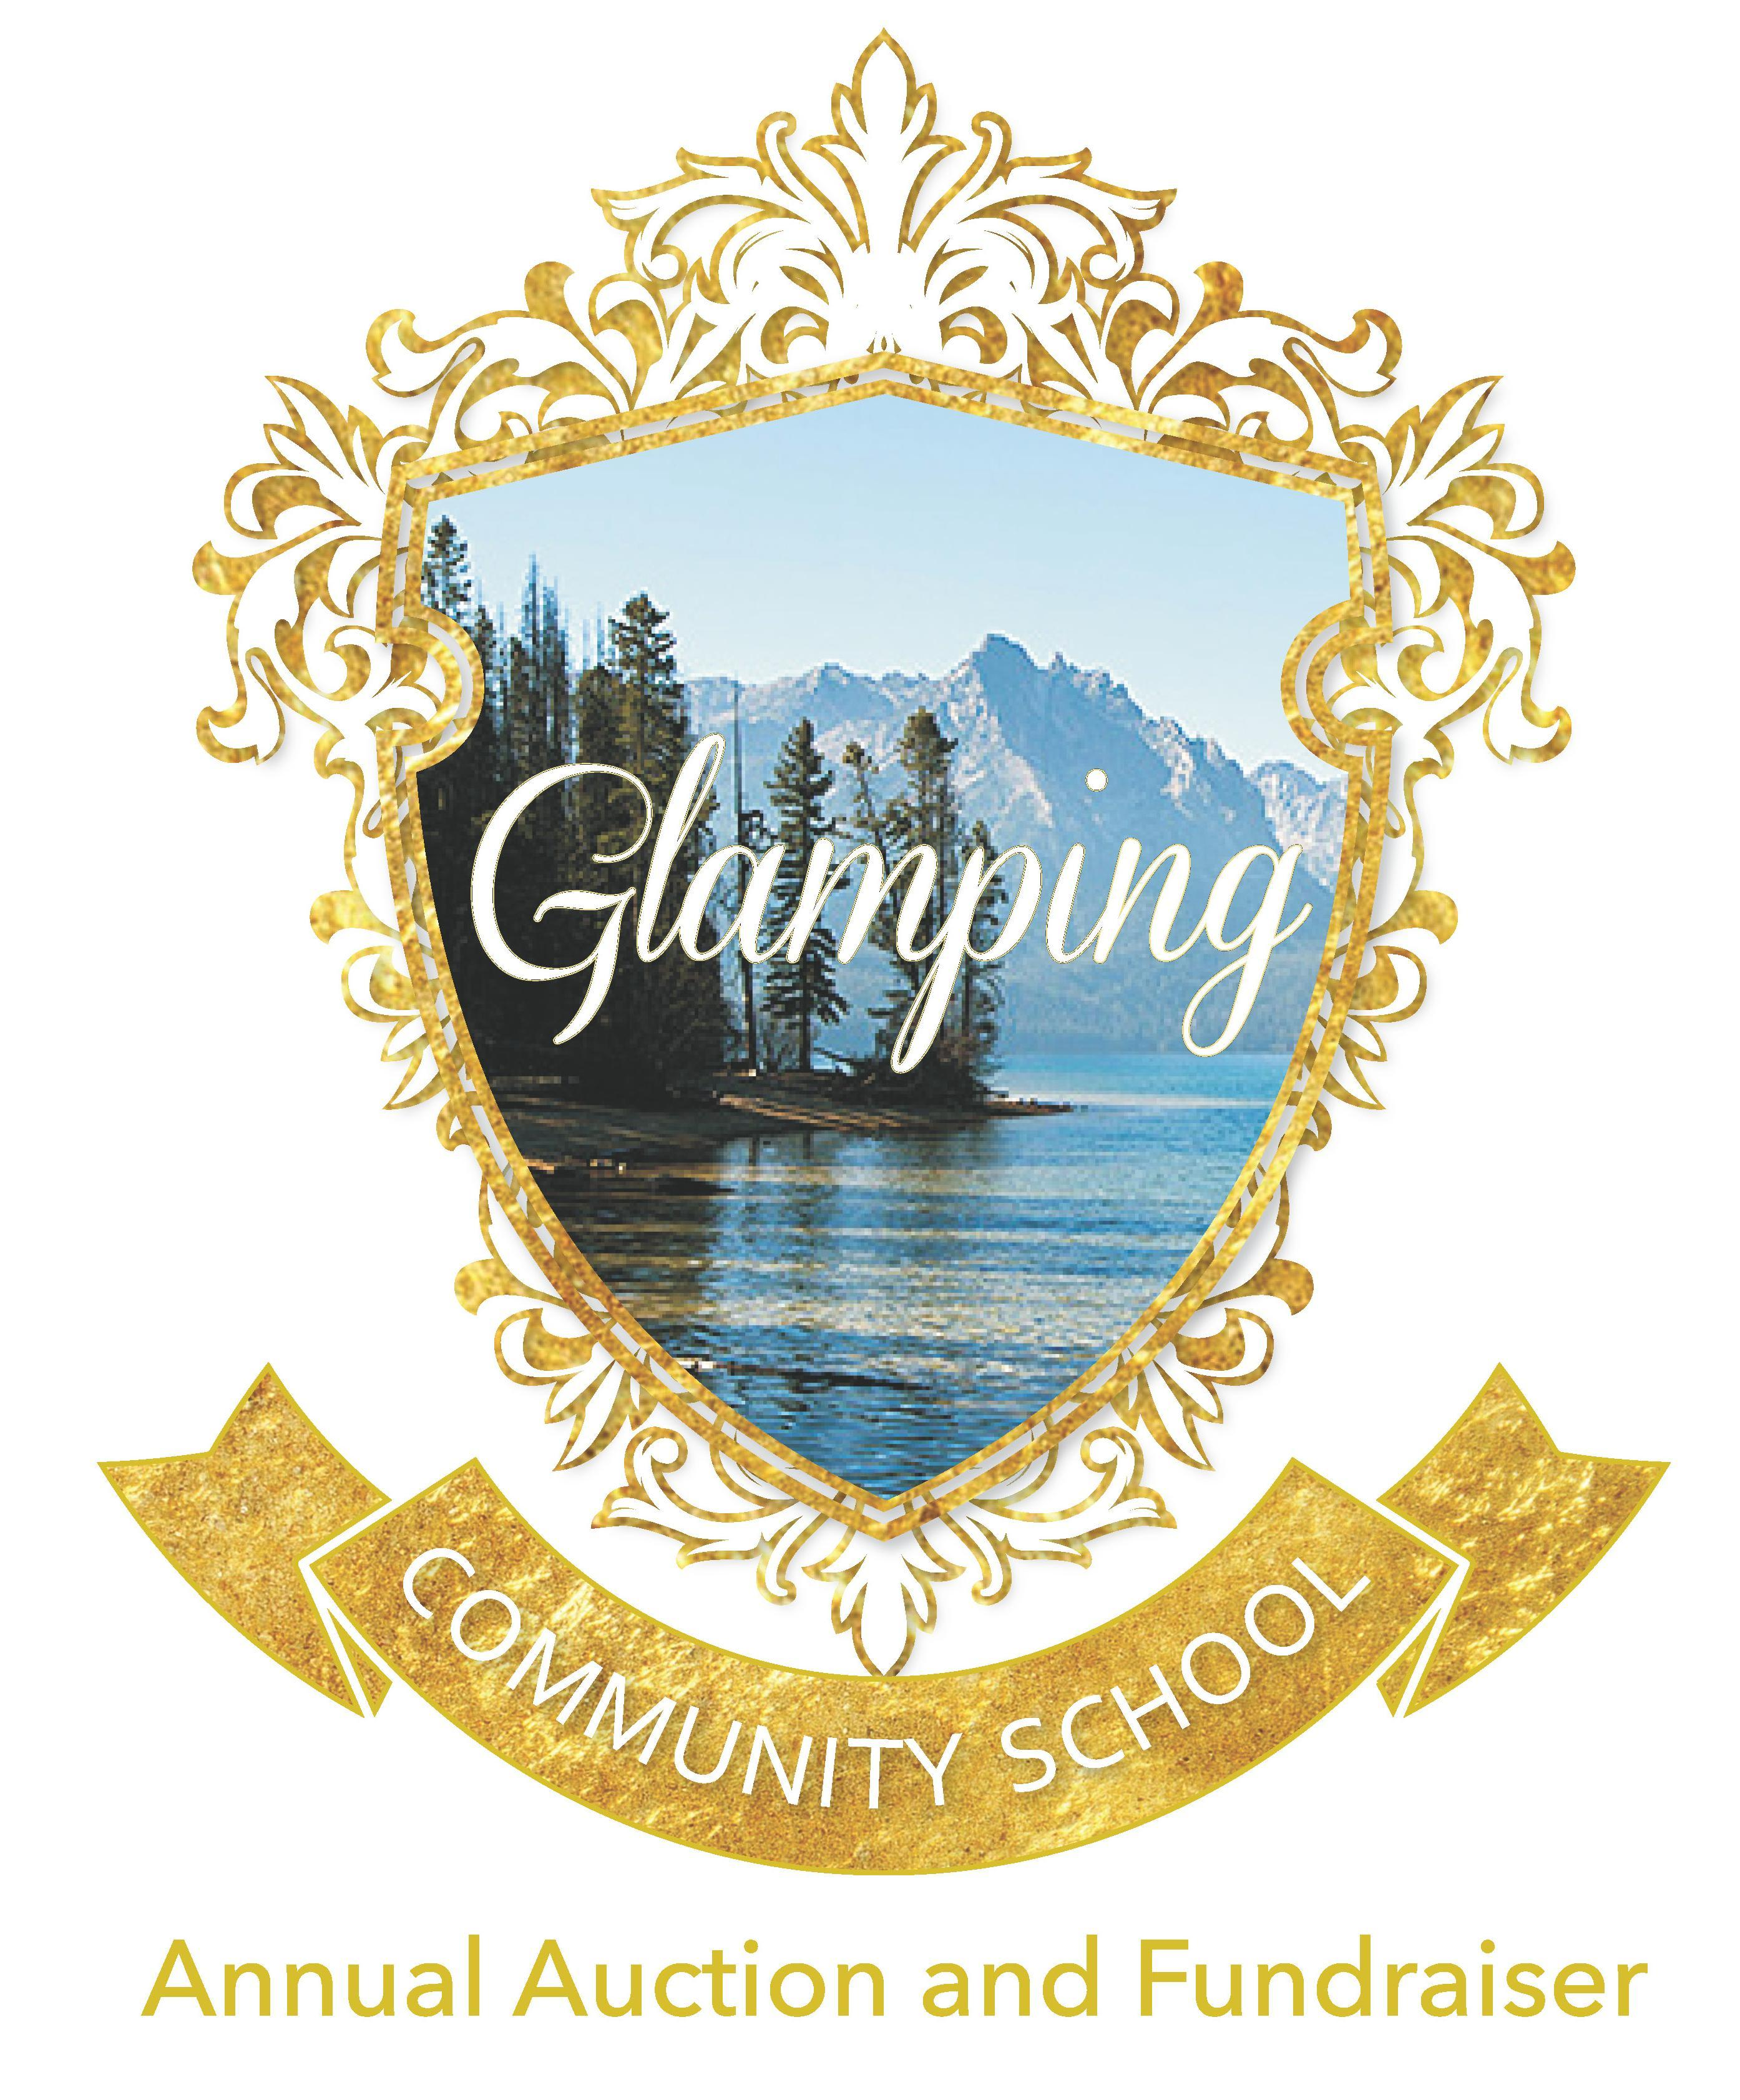 Annual Auction: Glamping Under the Stars April 20